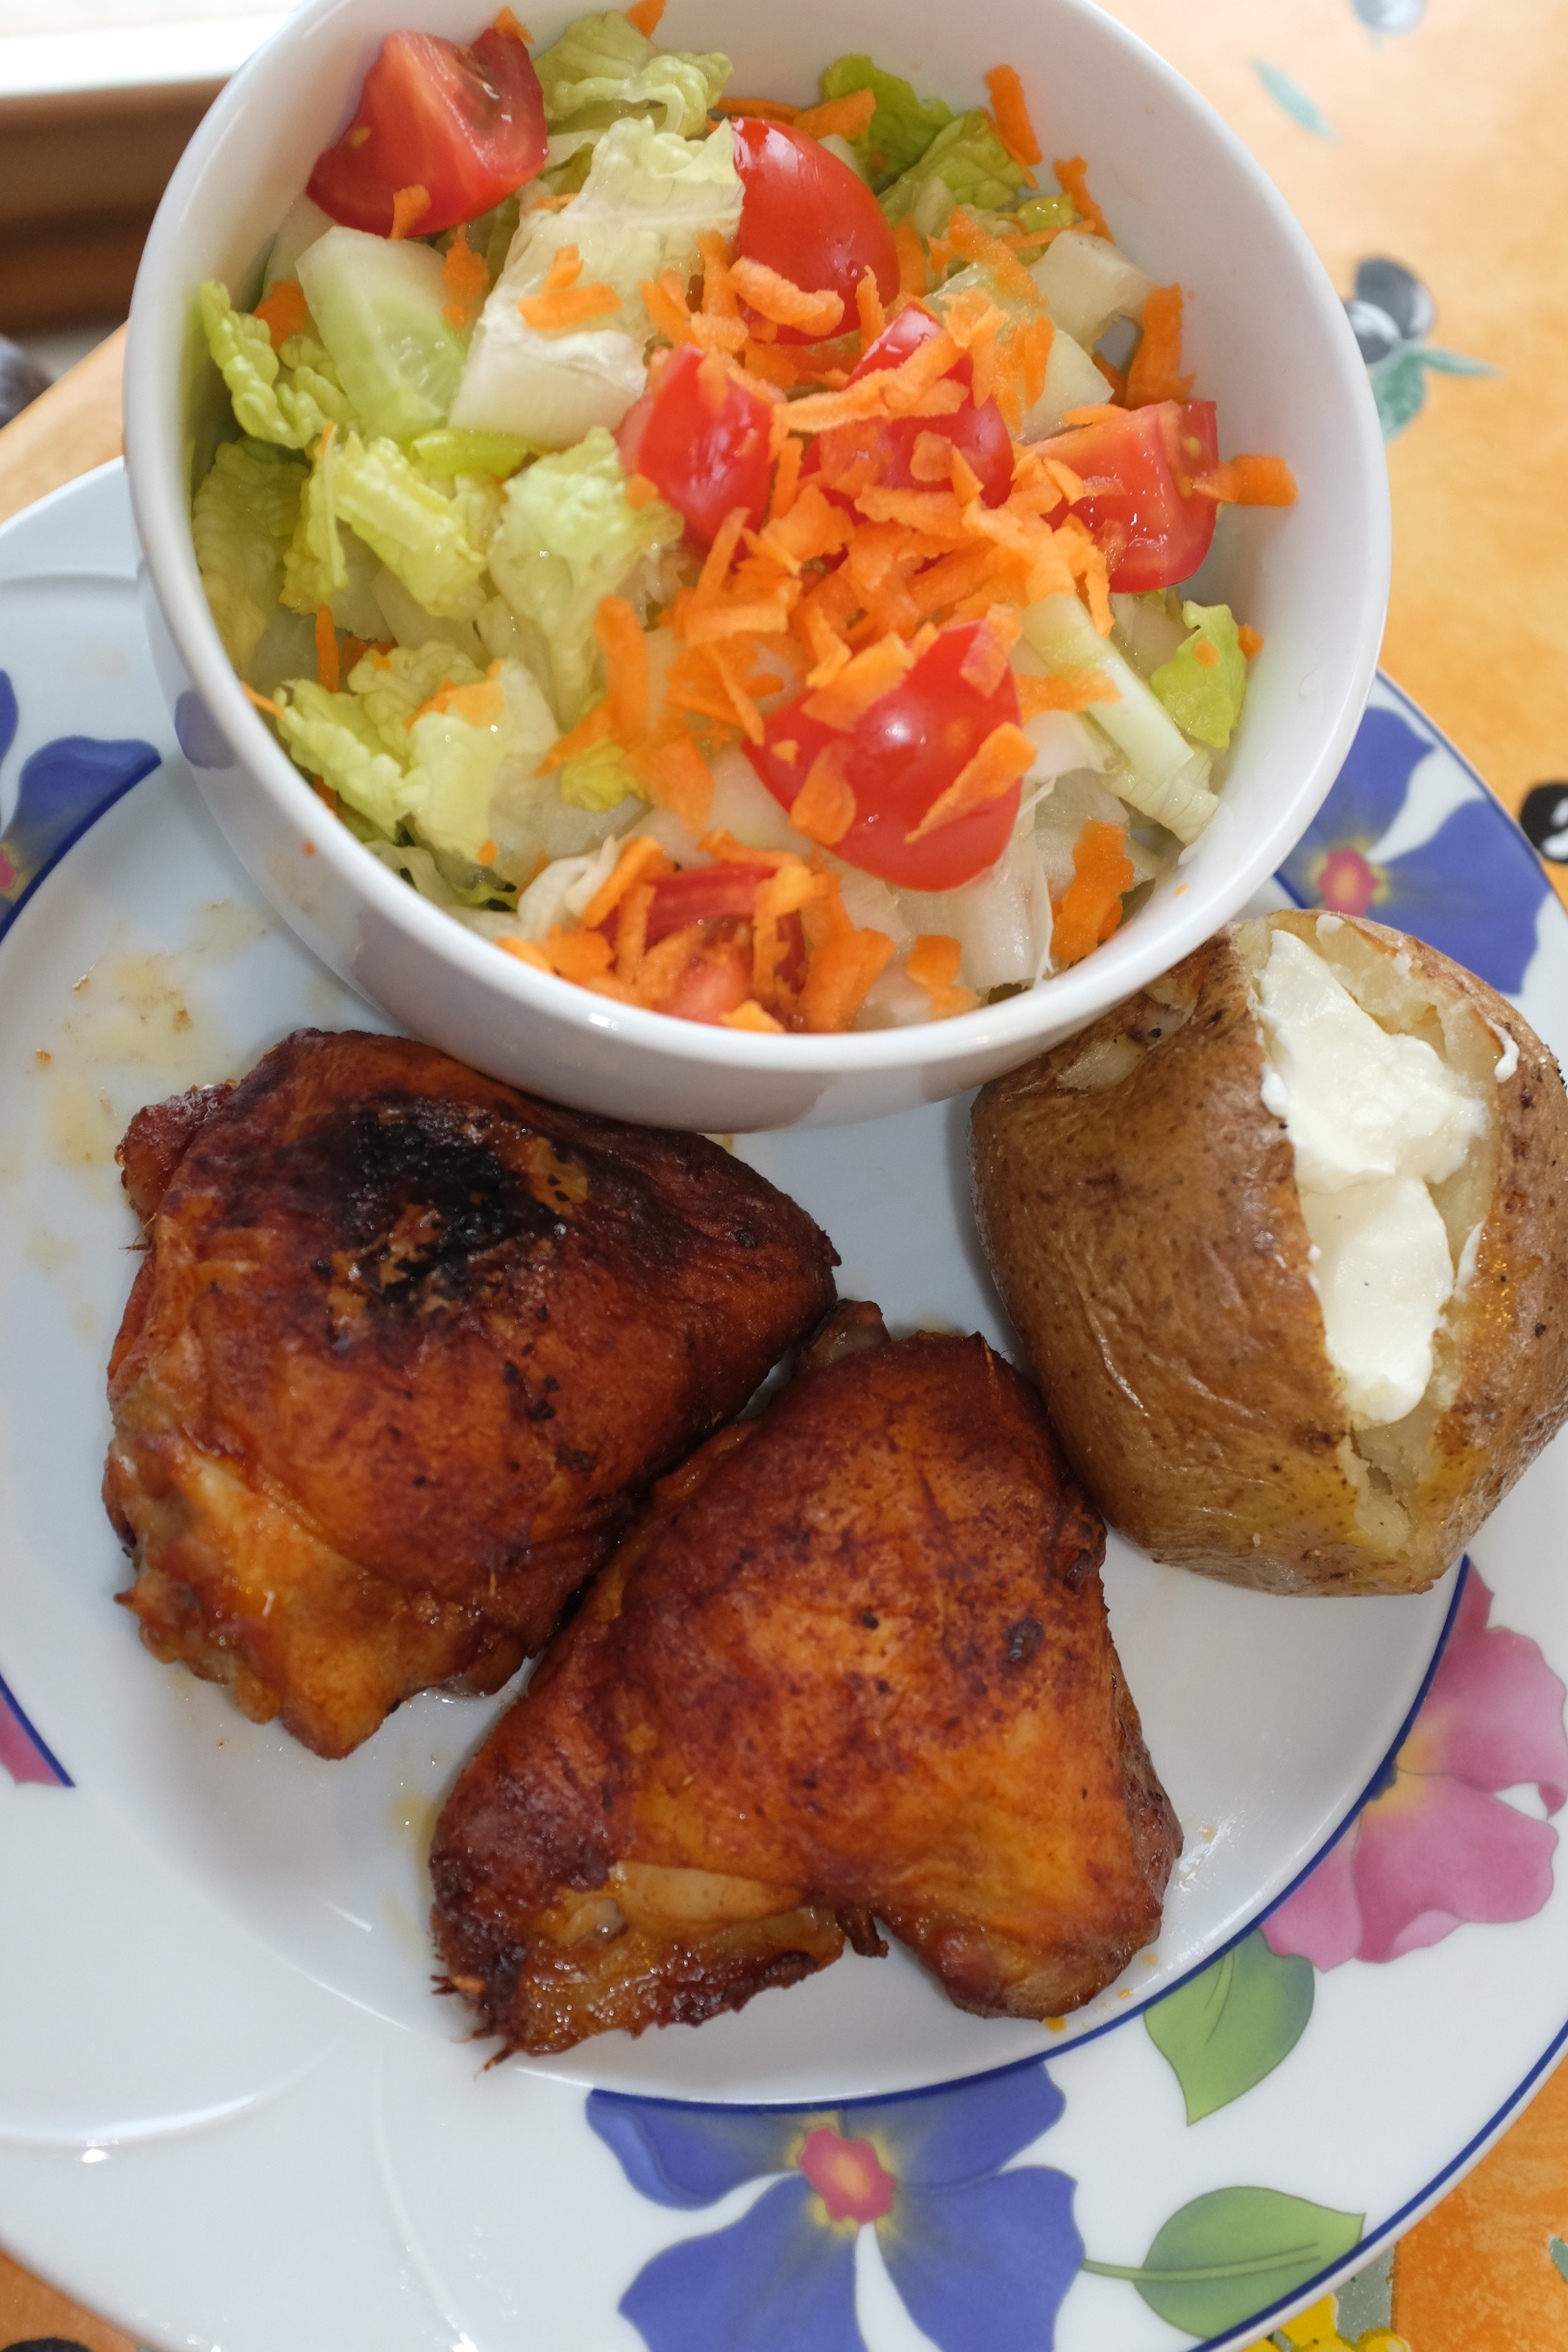 Baked marinated chicken thighs, baked potato, and a side salad